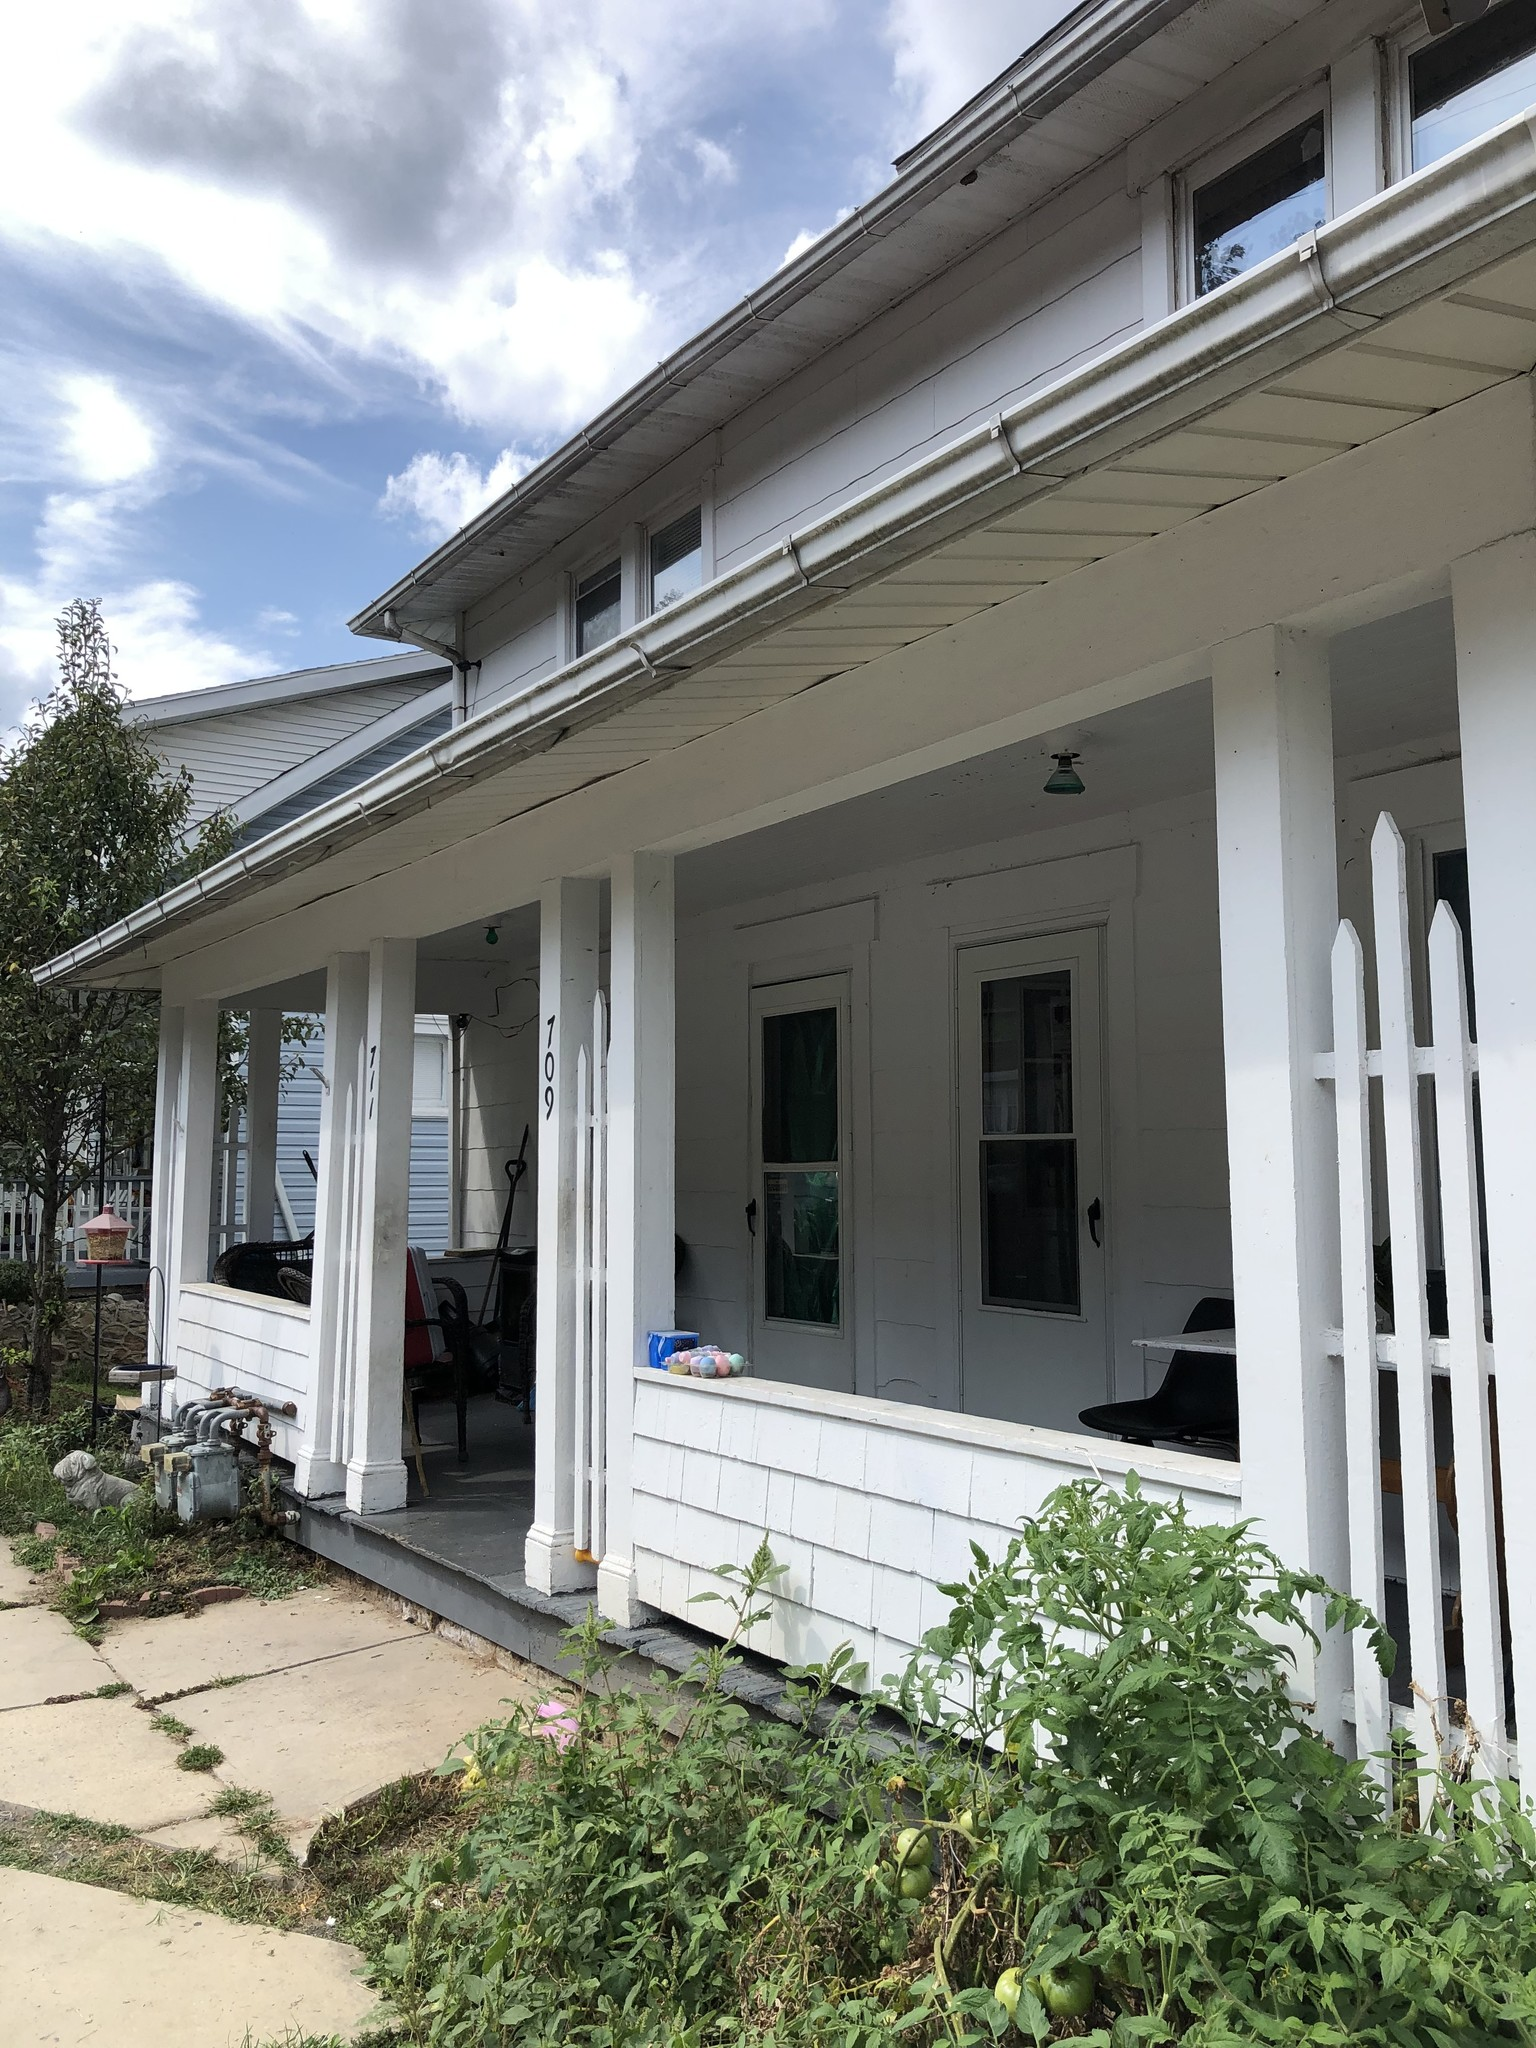 Multi-Family Home In Annandale